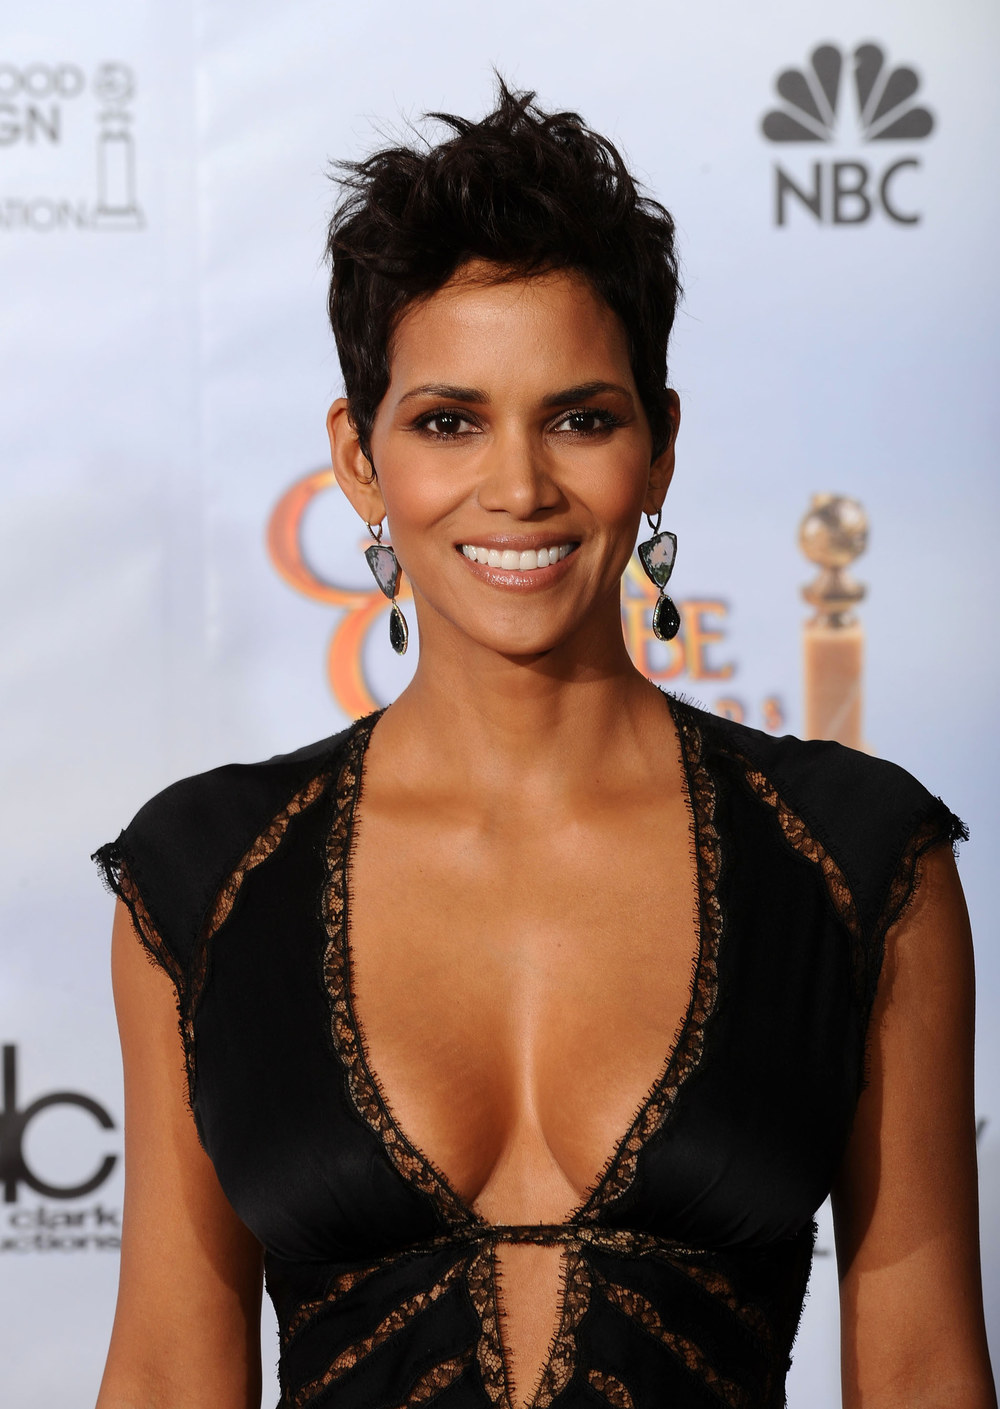 Halle Berry breast implants | Her Bra Size